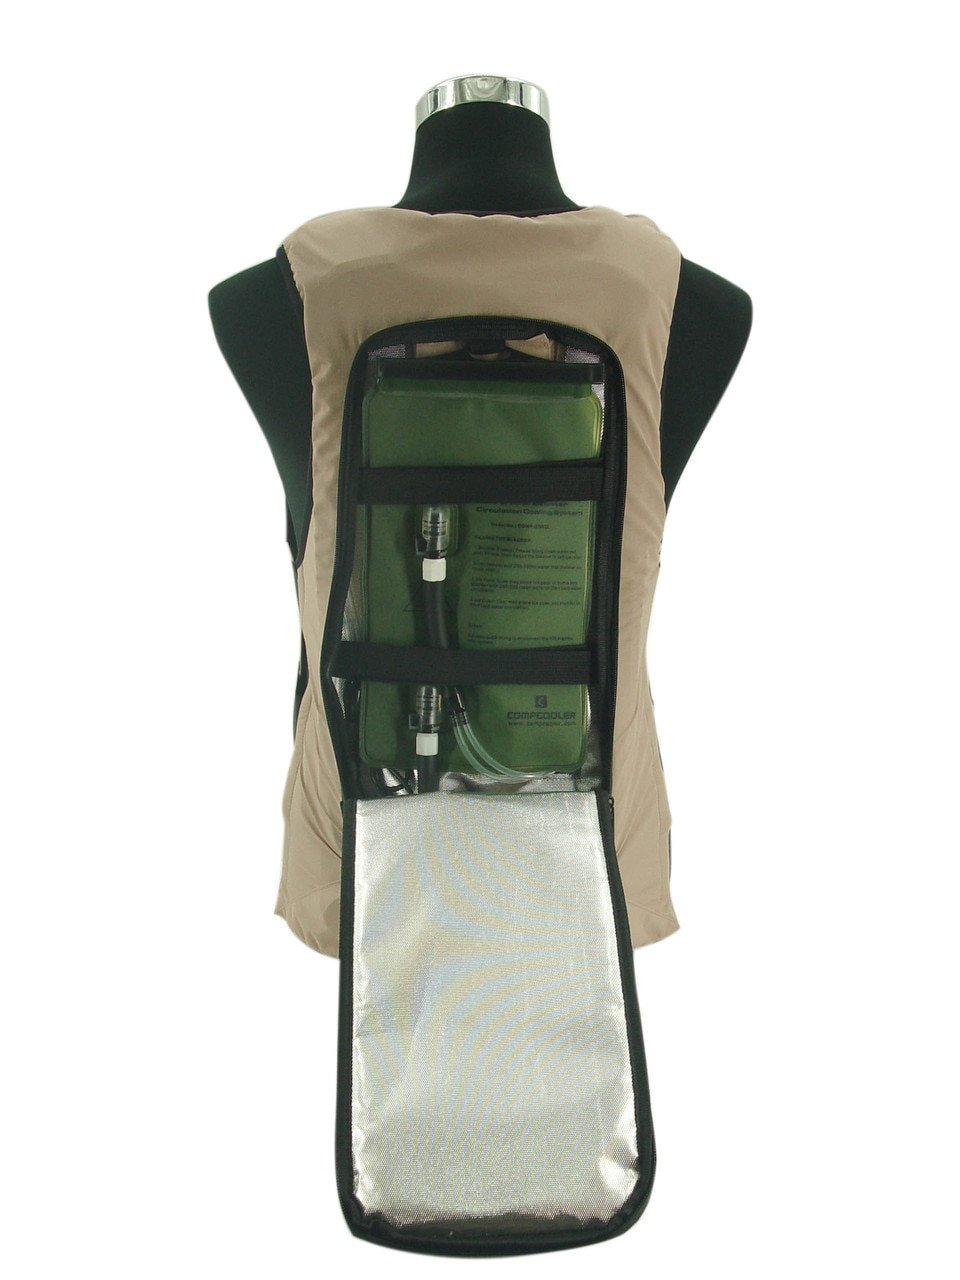 Ice Water Circulating Cooling Vest Tan Detachable Bladder XL-2XL by Compcooler (Image #3)